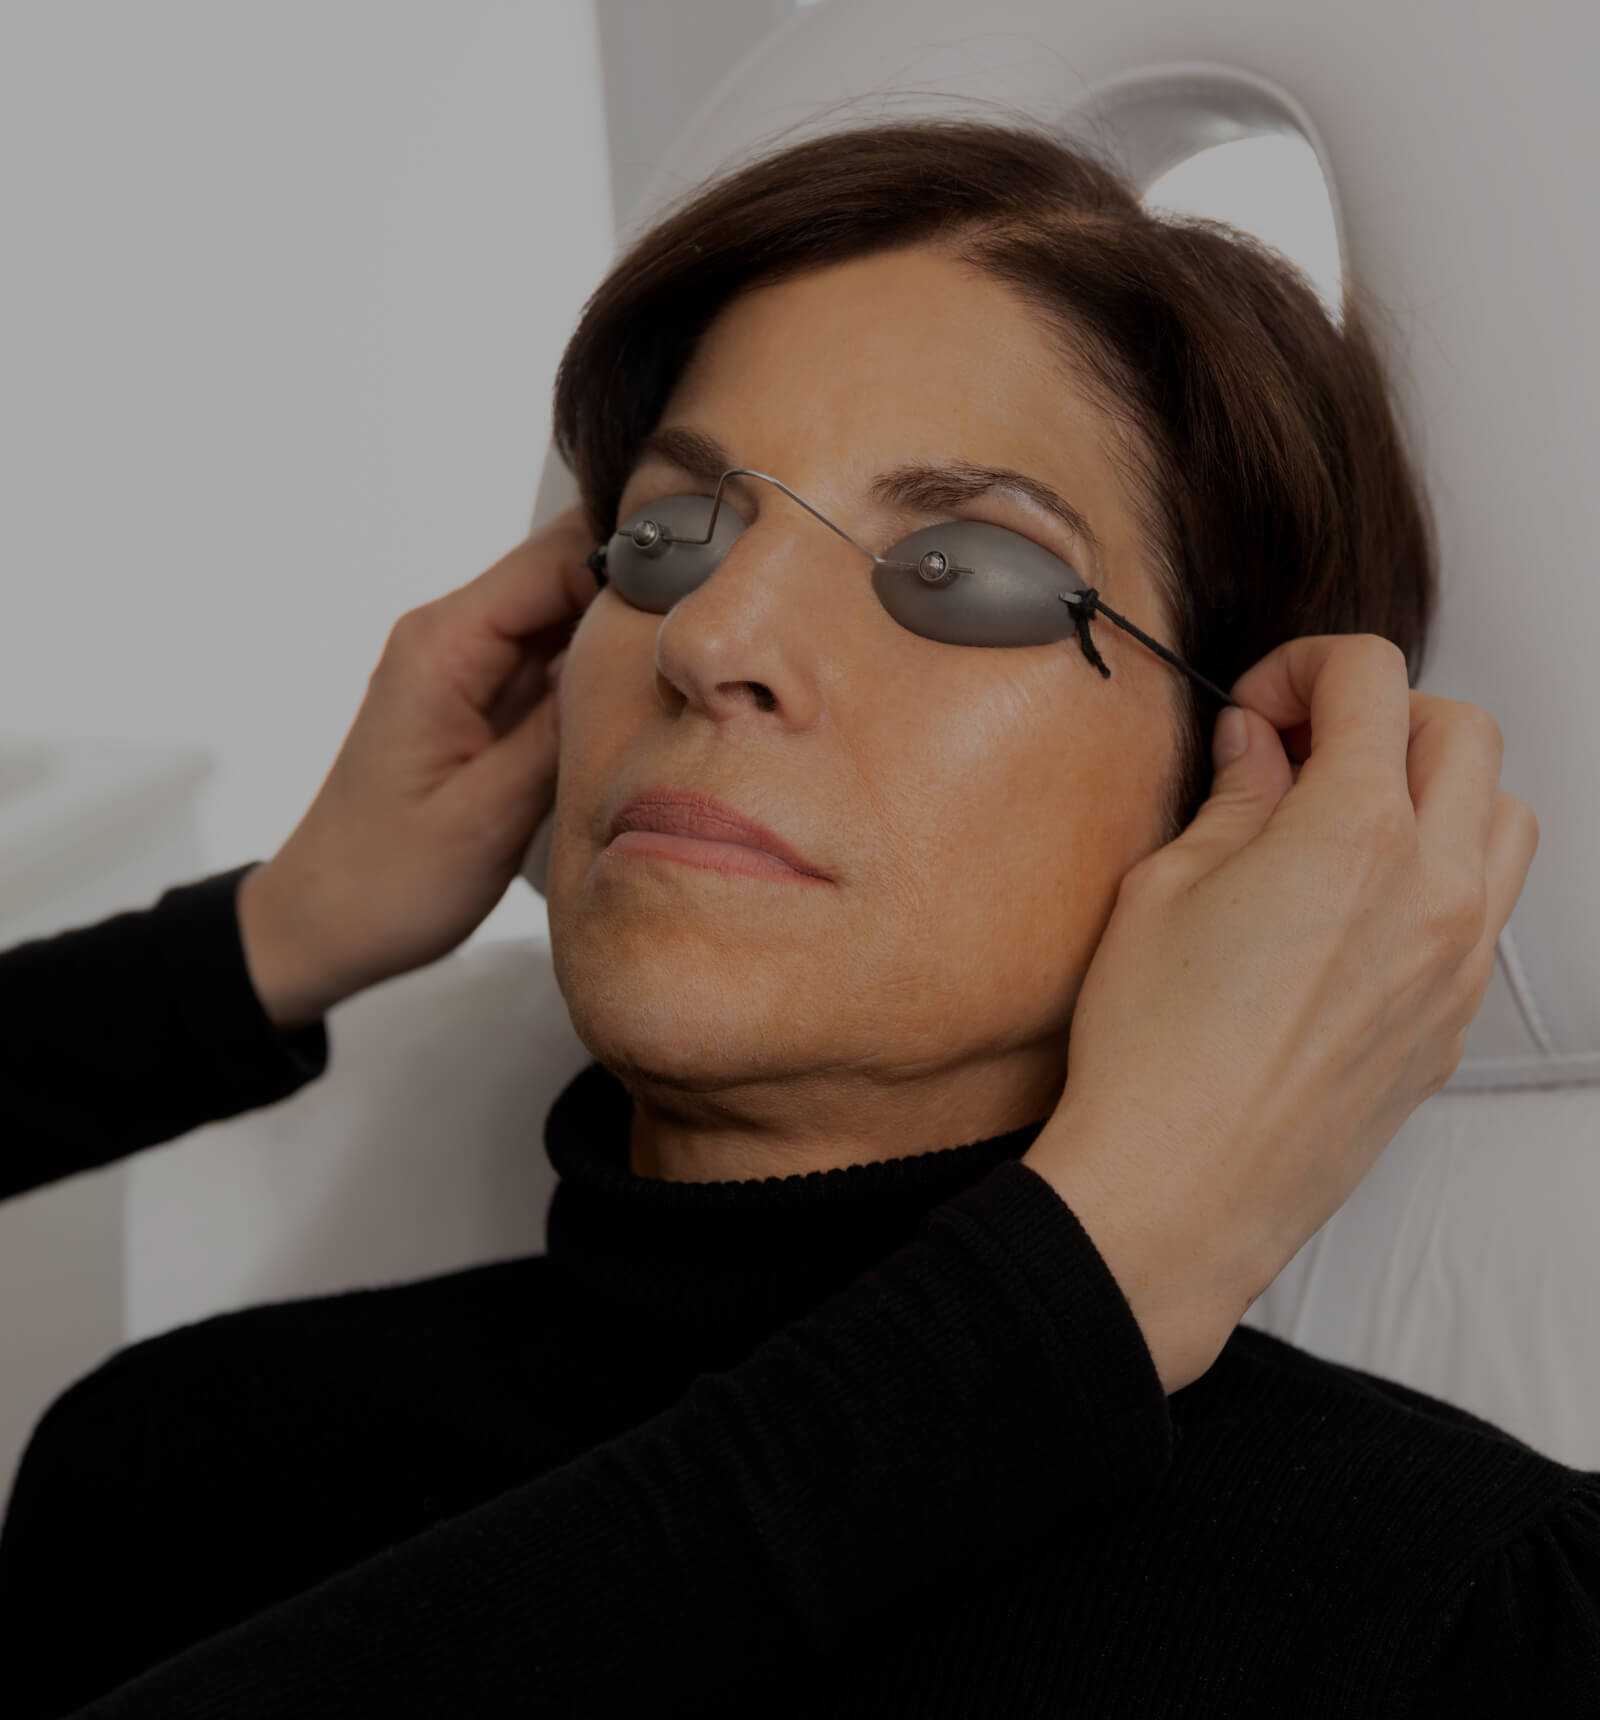 A medical aesthetic technician from Clinique Chloé installing laser protective glasses on a patient's eyes